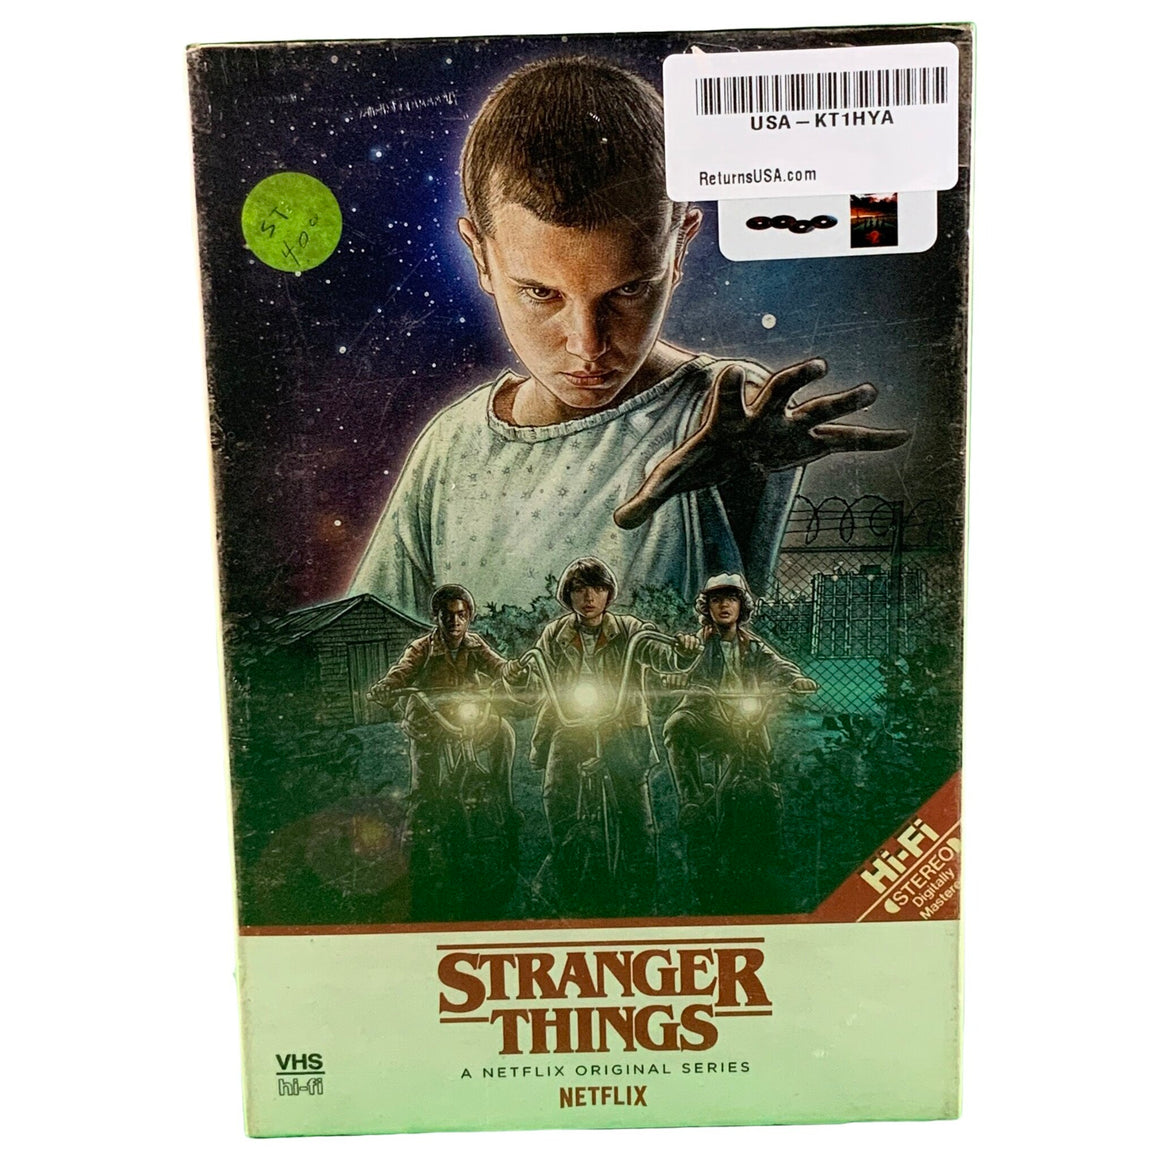 Stranger Things: Season 1 Collector'S Edition (4K/Uhd + Blu-Ray) - Stranger Things